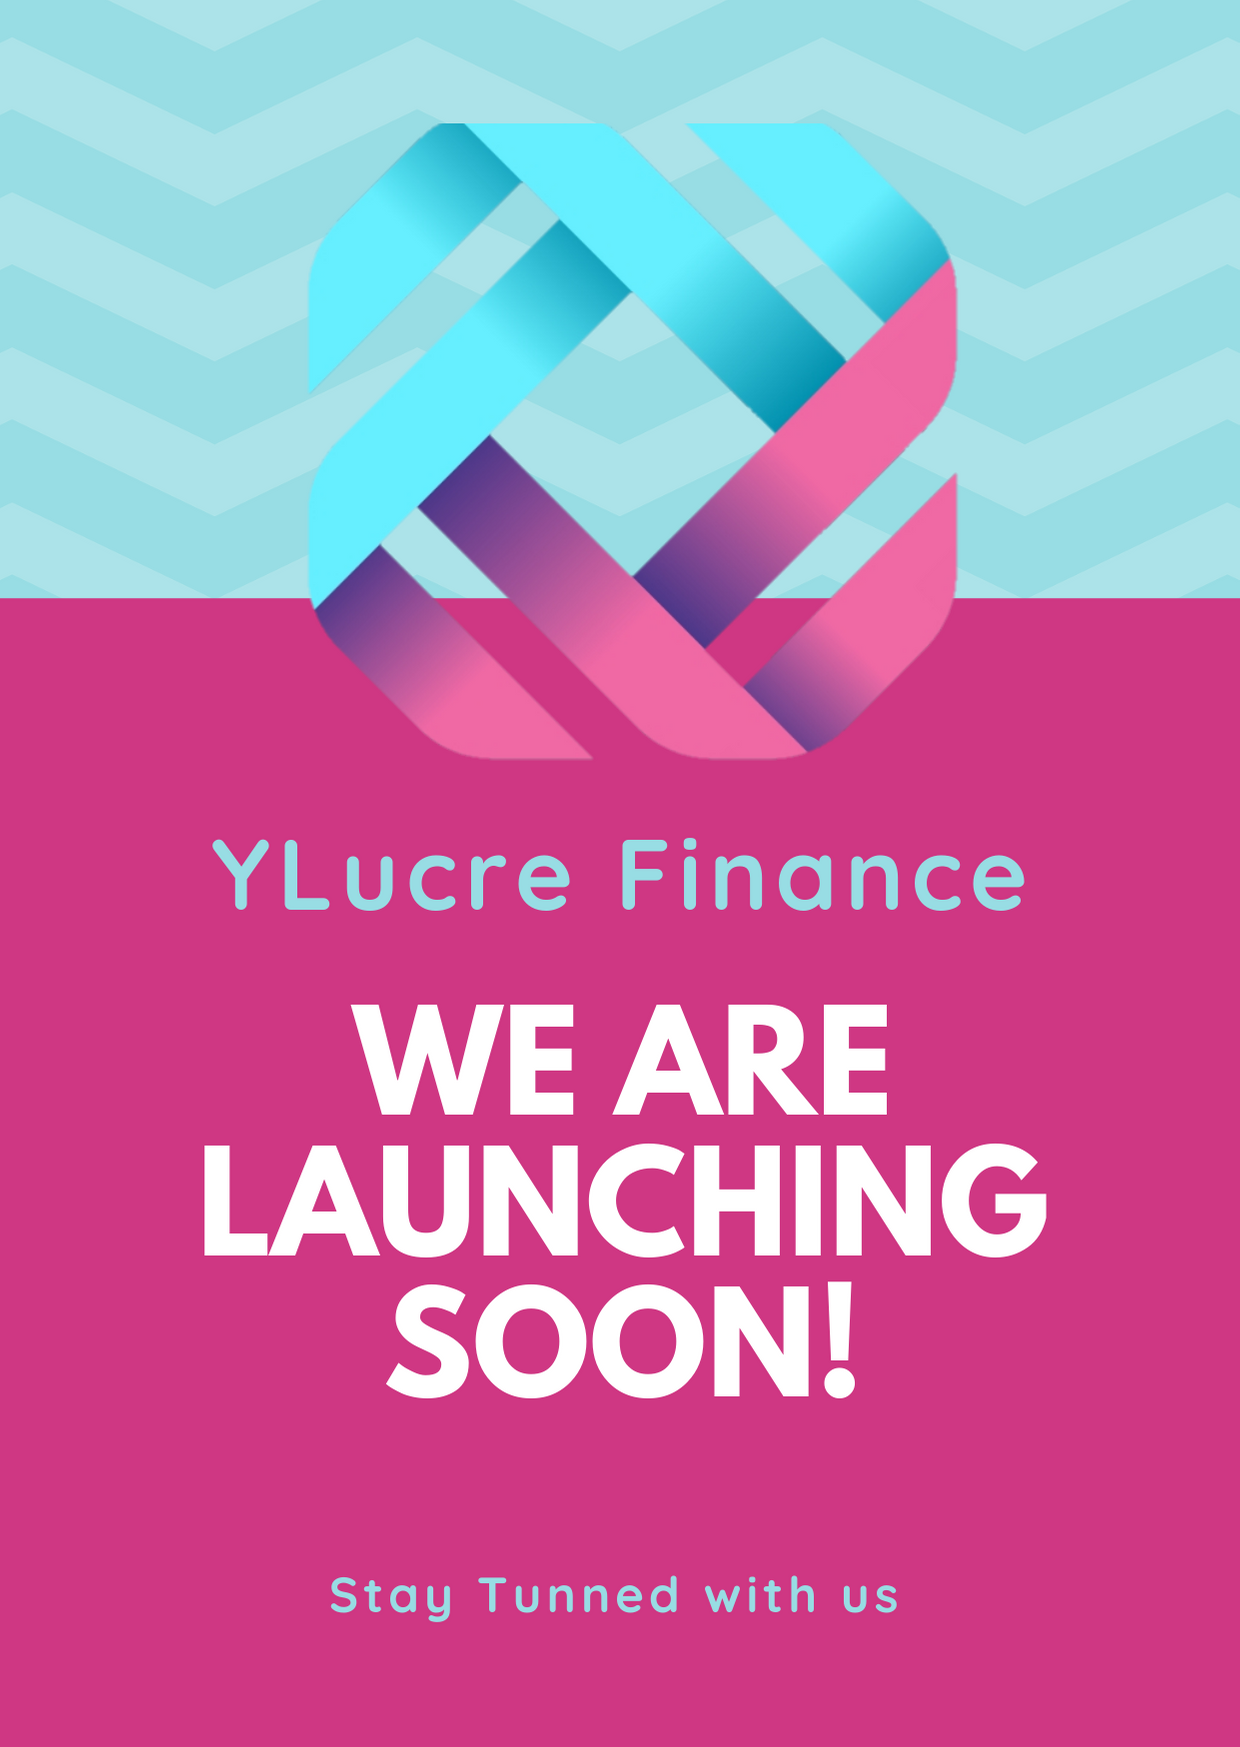 Ylucre Is Launching Soon By Ylucre Finance Medium